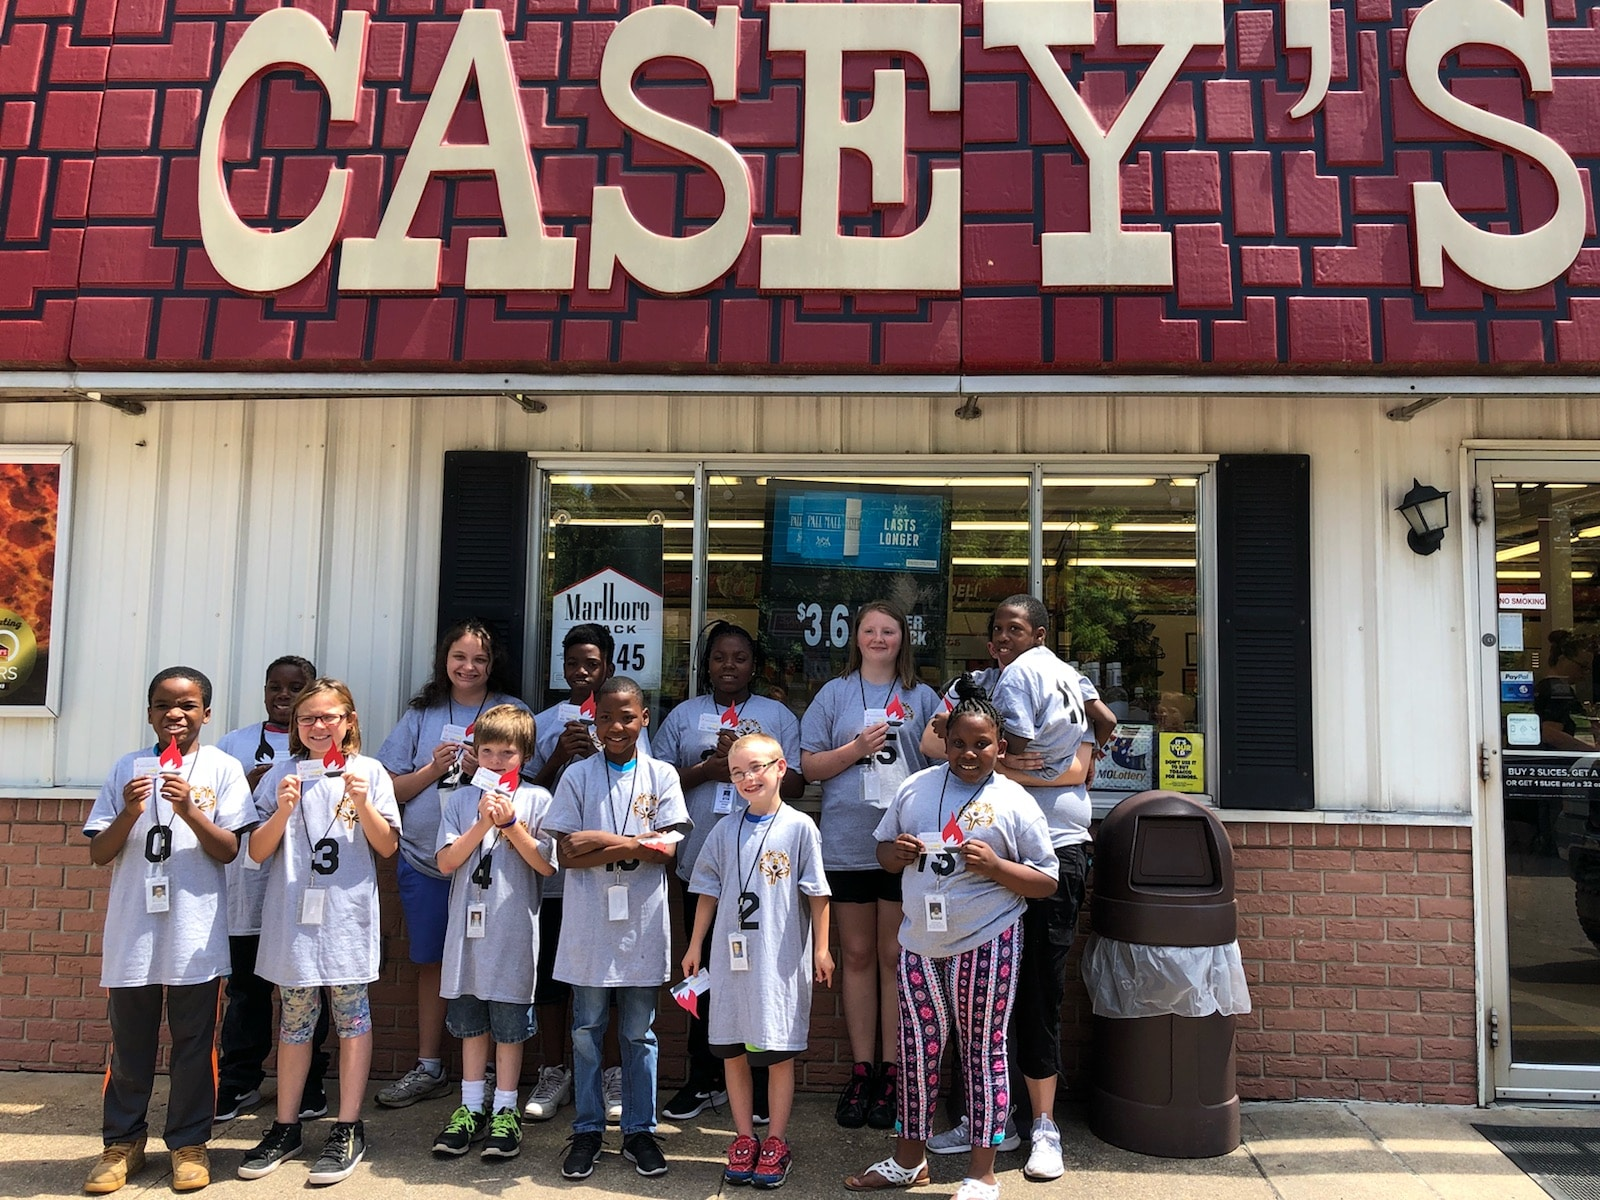 A group of Young Athletes stand outside a Casey's General Store and hold a paper icon